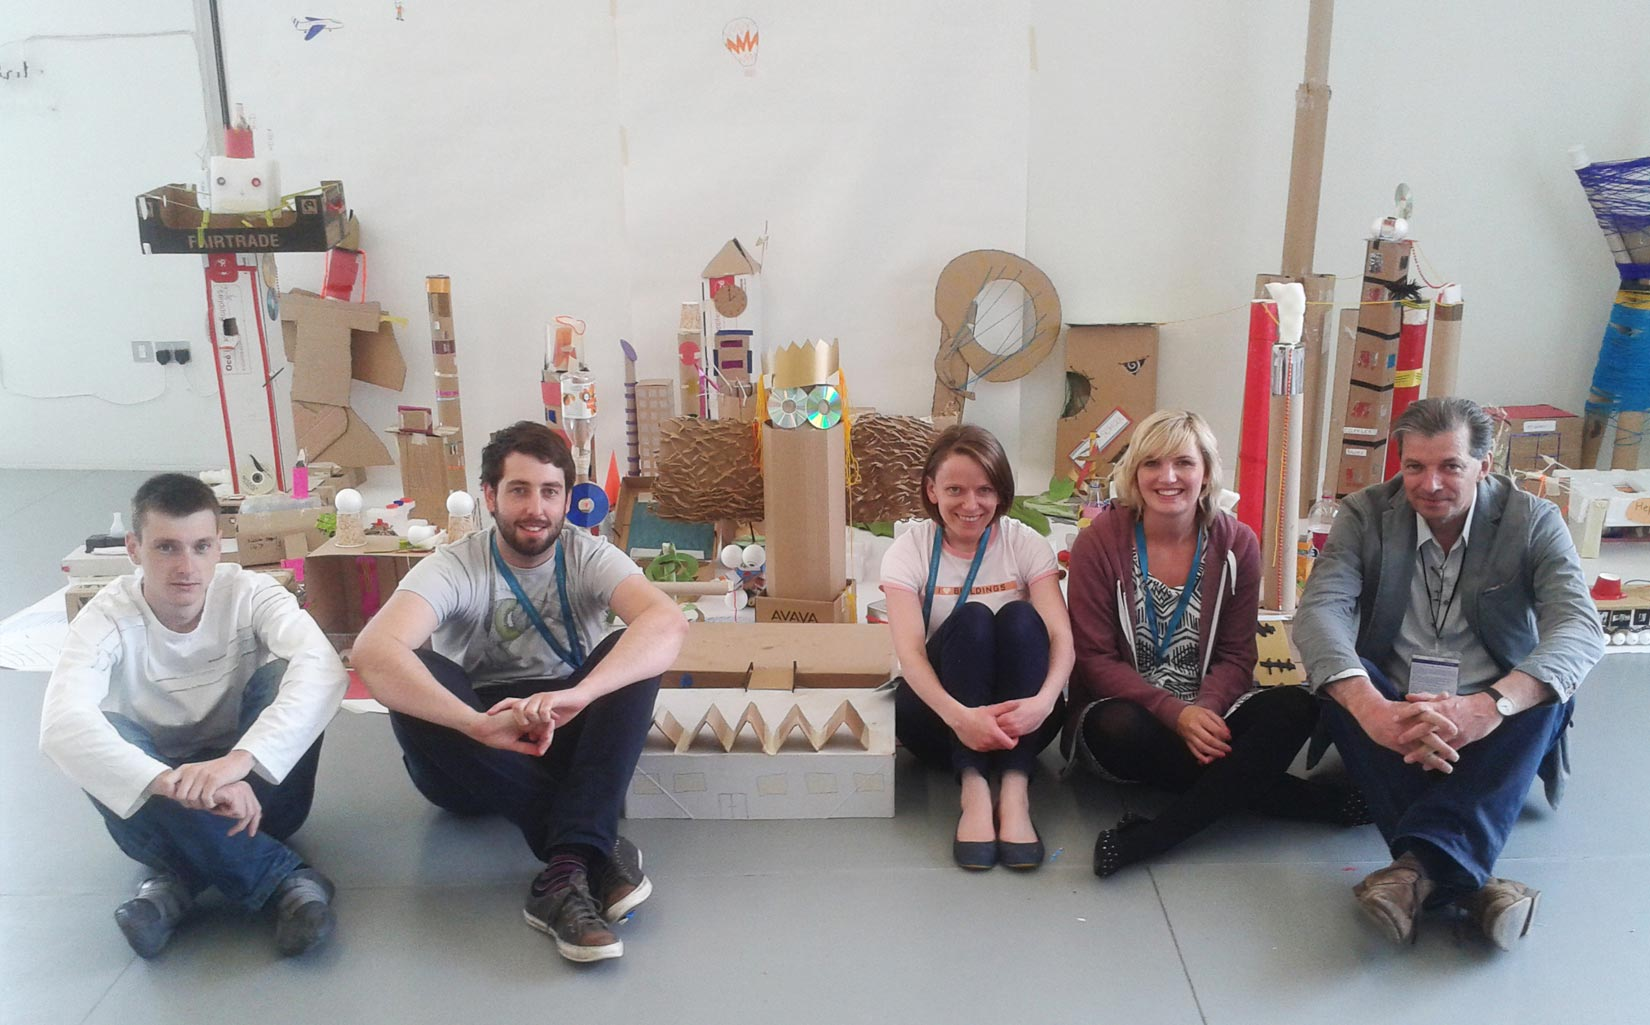 Family Architecture Day, Hepworth Gallery, Wakefield, Team